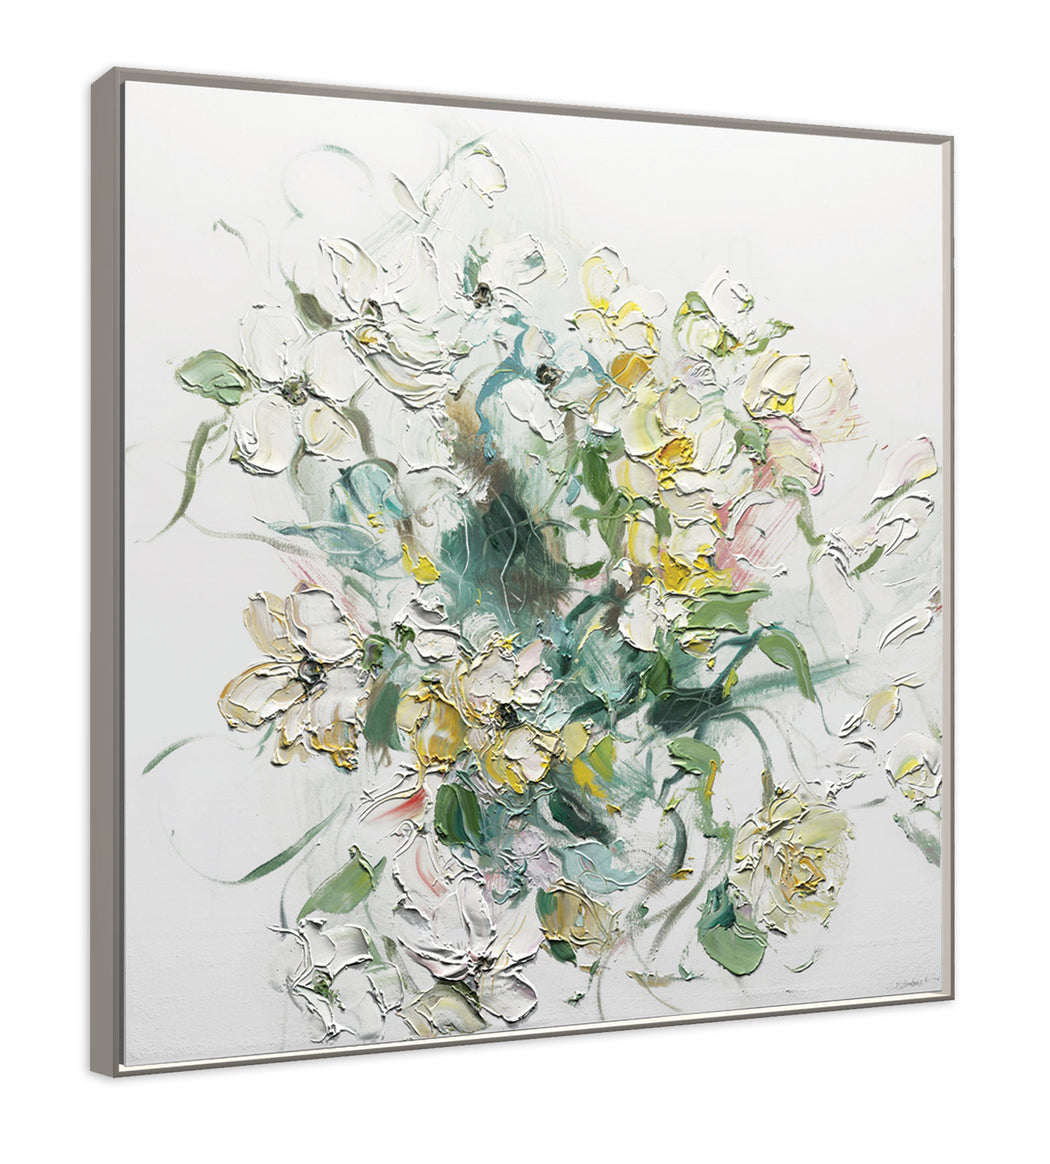 Fehrenbach's impasto brushstrokes are perfectly caputred in this Géomatique Textured Art Print